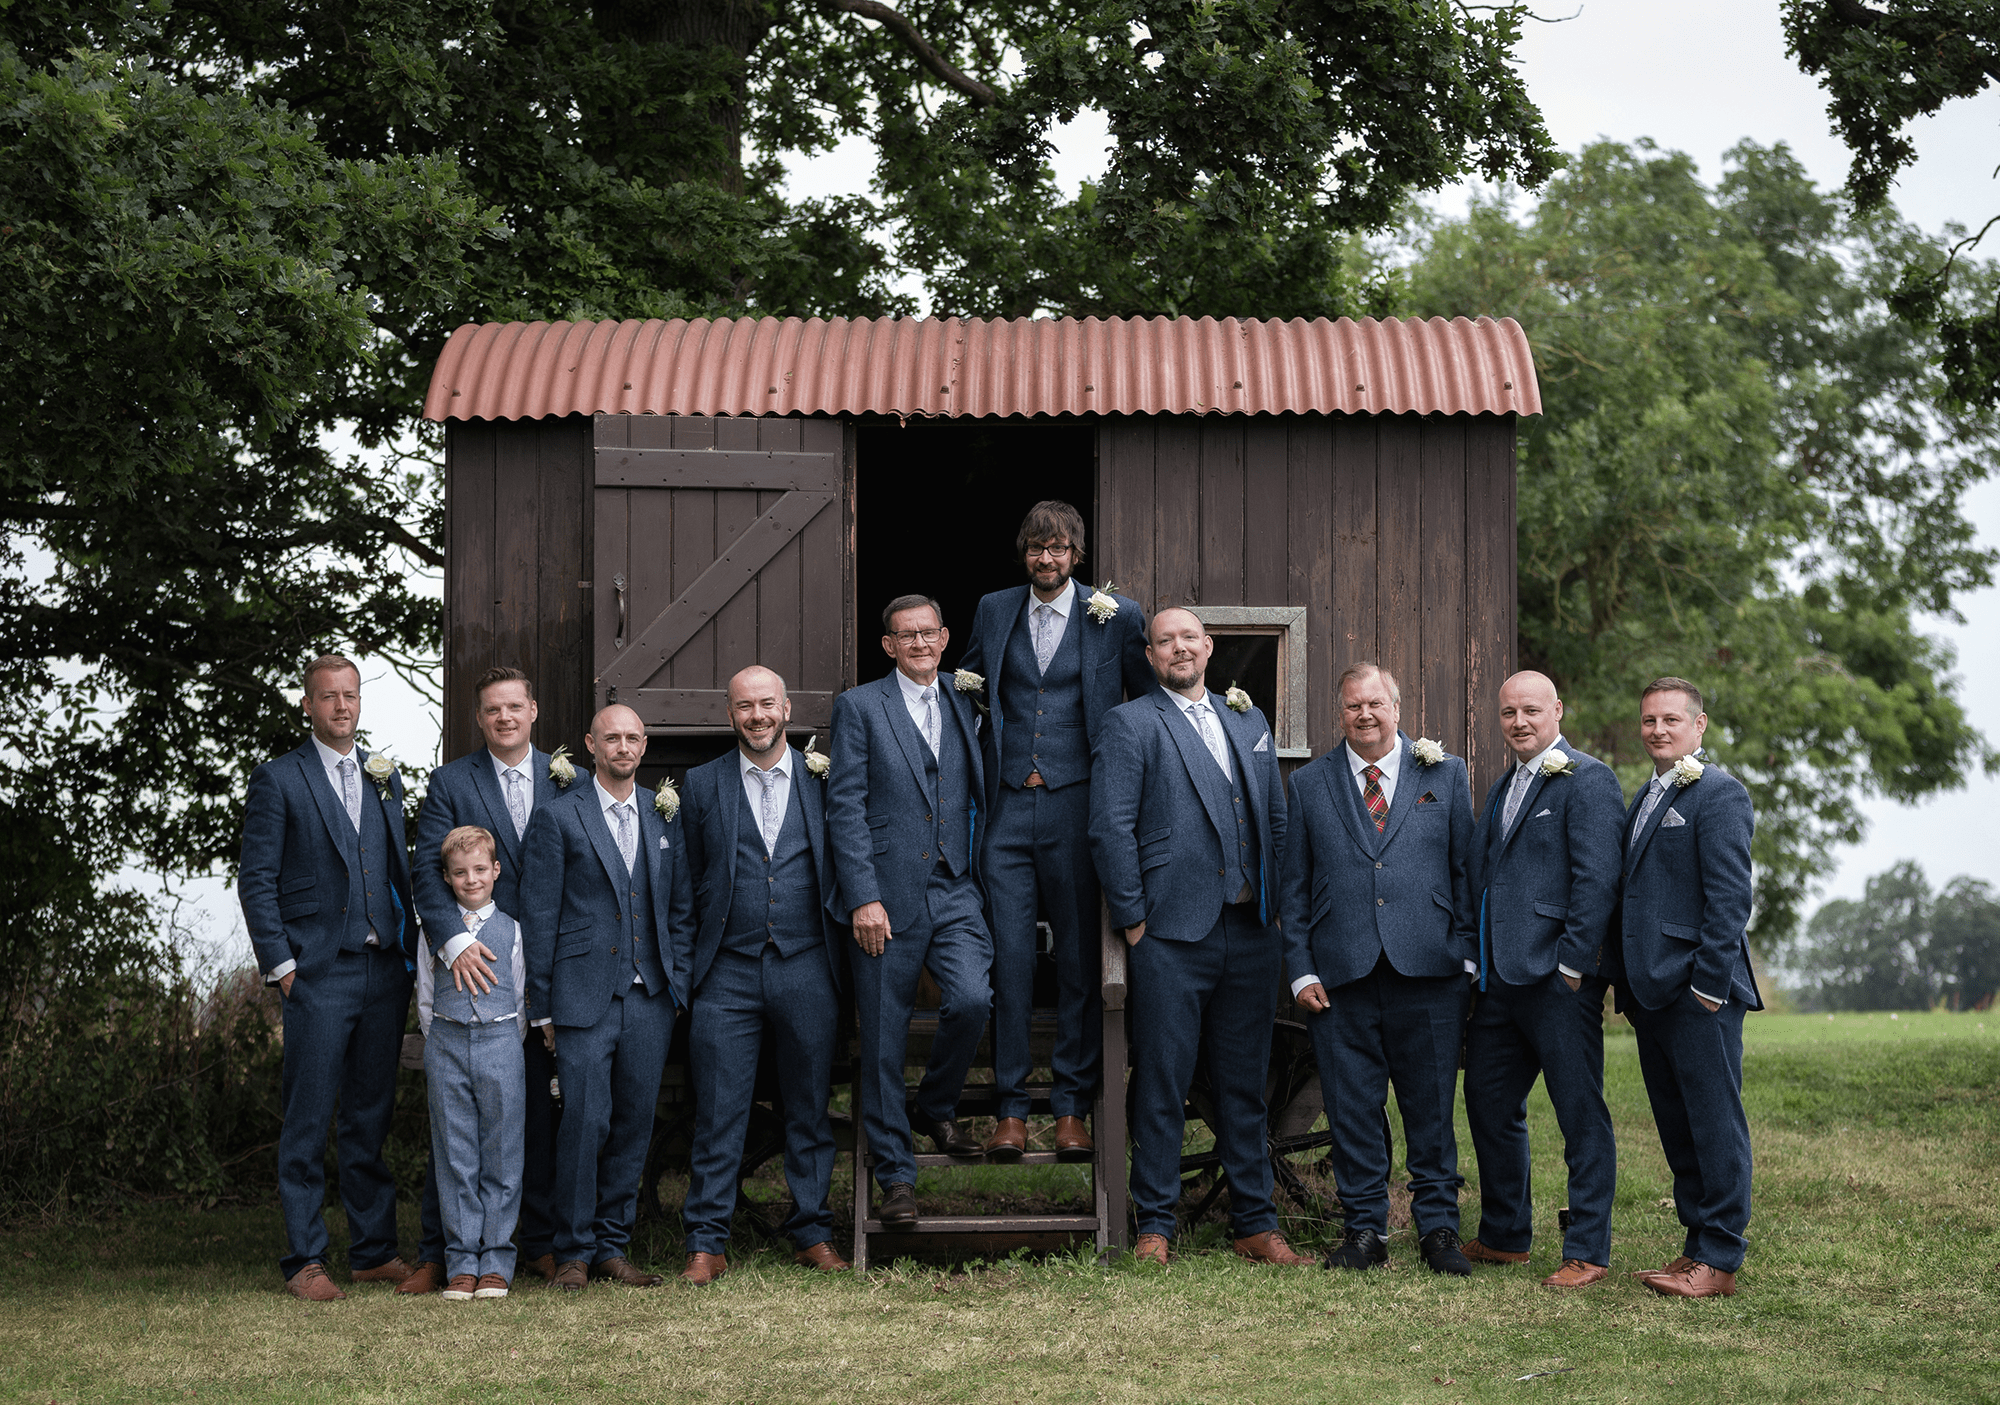 Tips for Brides and Grooms - Group Photographs